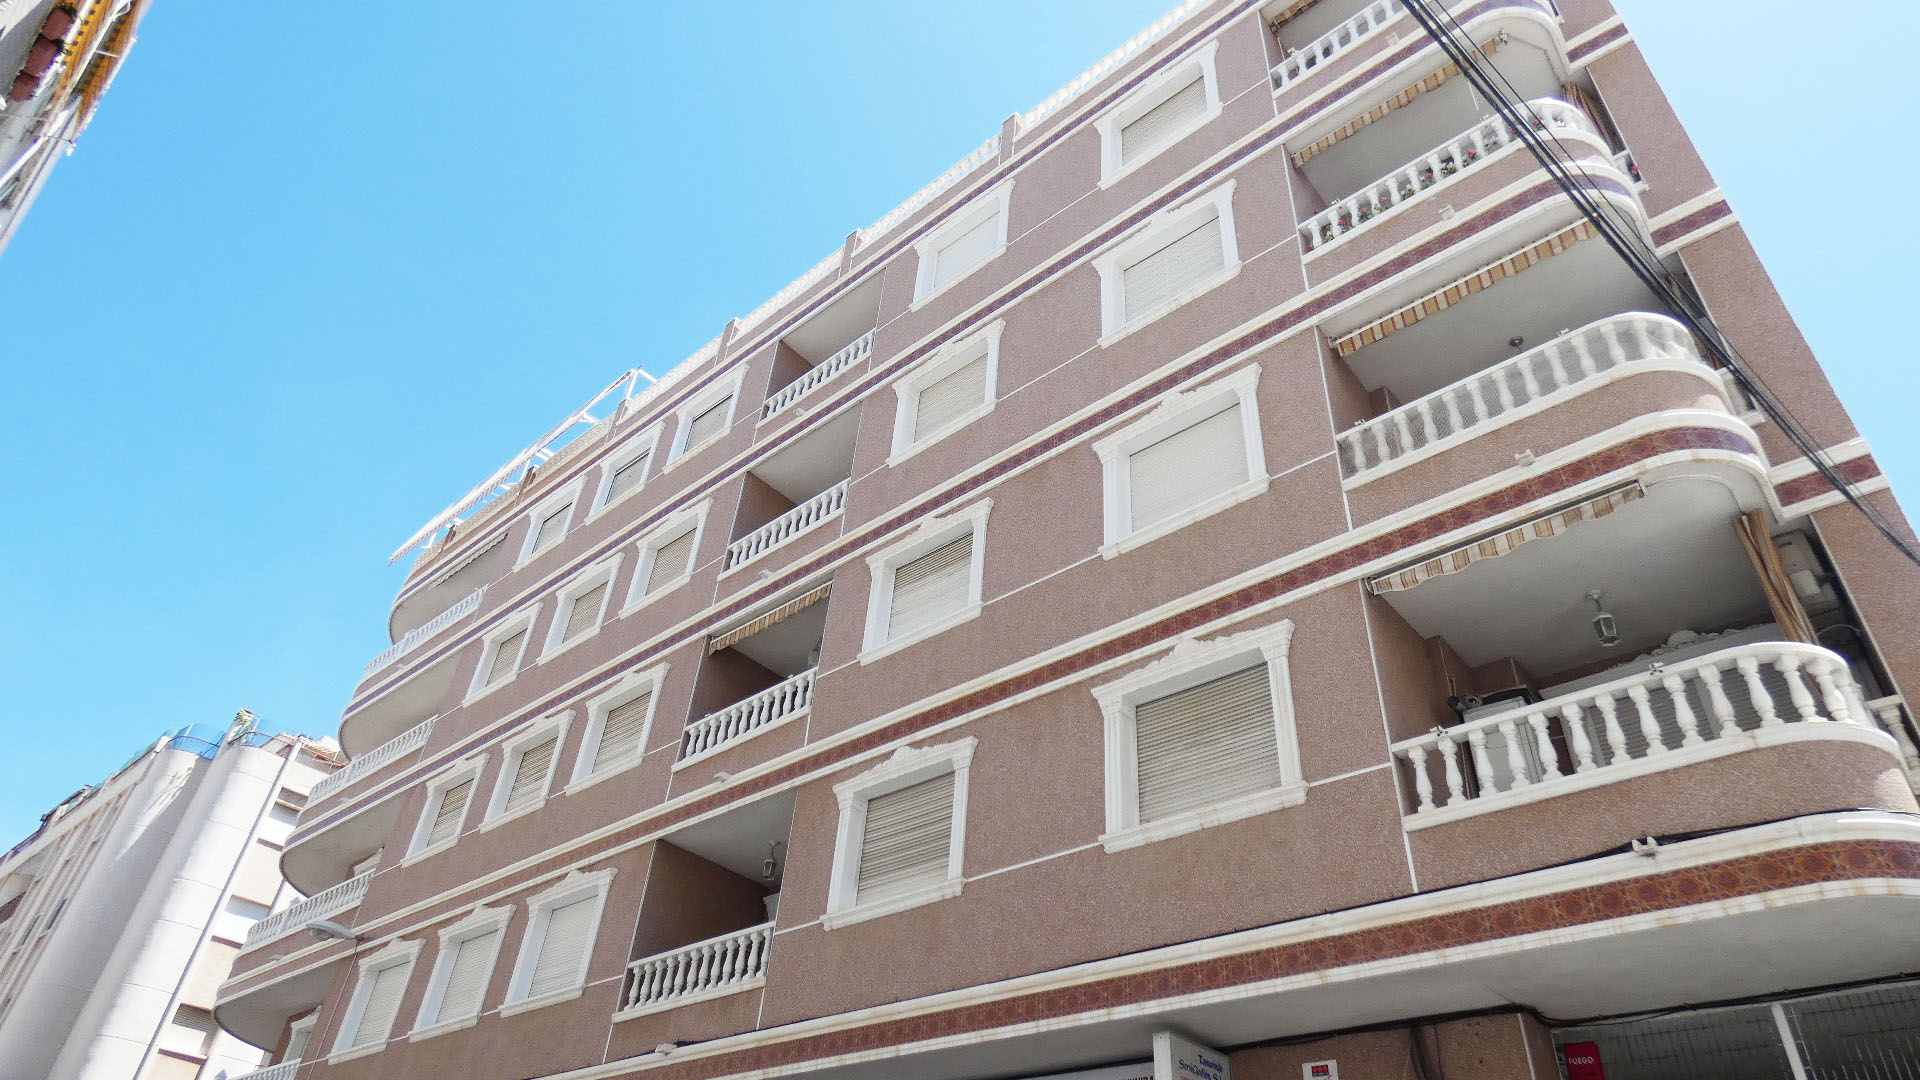 For sale: 3 bedroom apartment / flat in Torrevieja, Costa Blanca